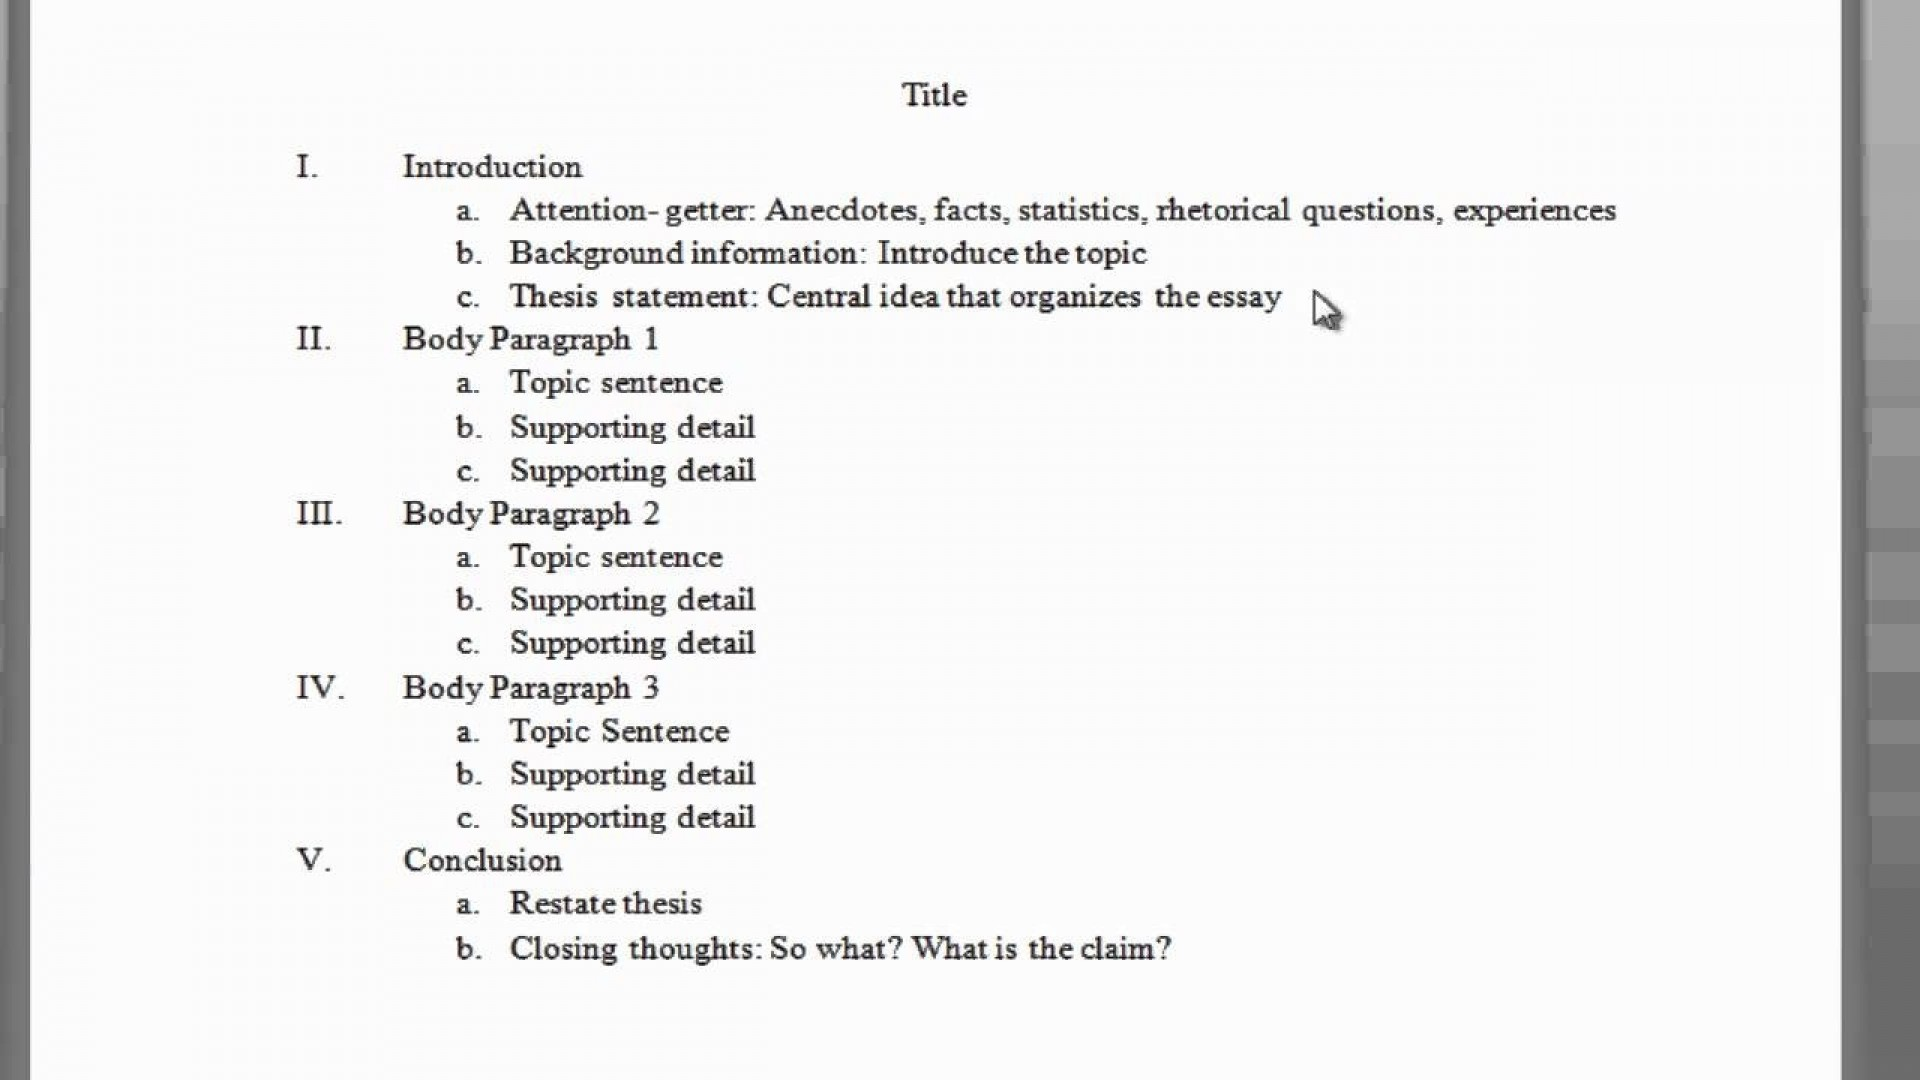 015 Paragraph Essay Structure Writings And Essays How To Start Body In An Argumentative Outline Youtube Intende Informative Third Expository Examples Narrative Analytical Persuasive Example Phenomenal What Is A Claim 1920